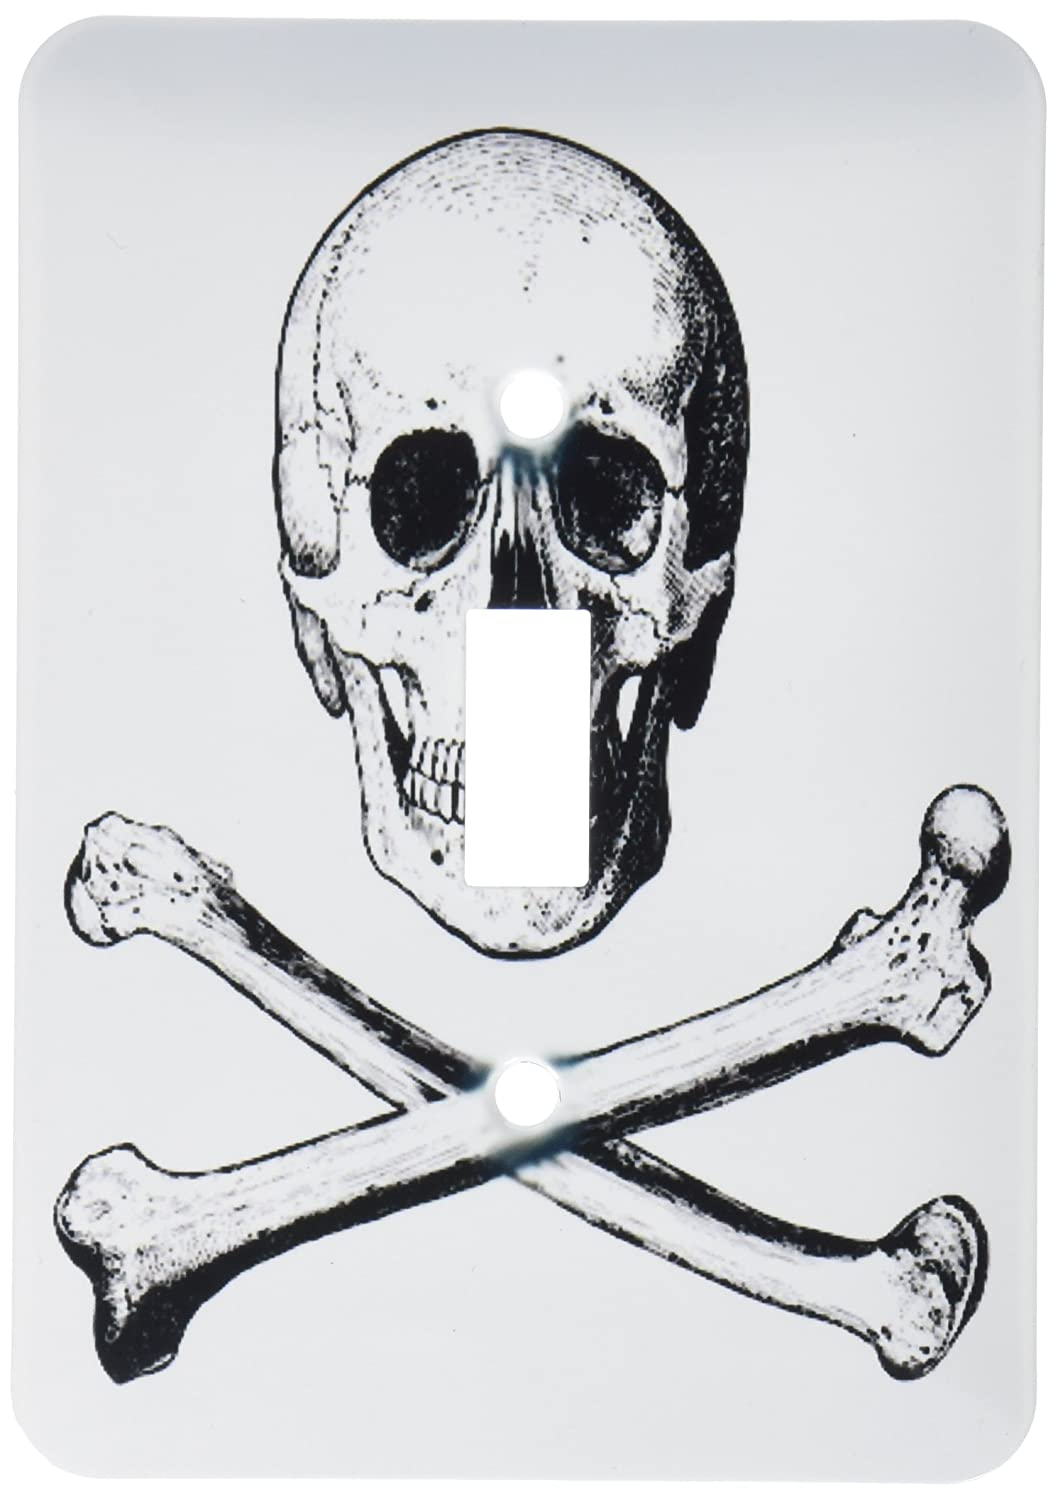 3drose Lsp2018721 Skull And Crossbones Picture Of Skull And Bones